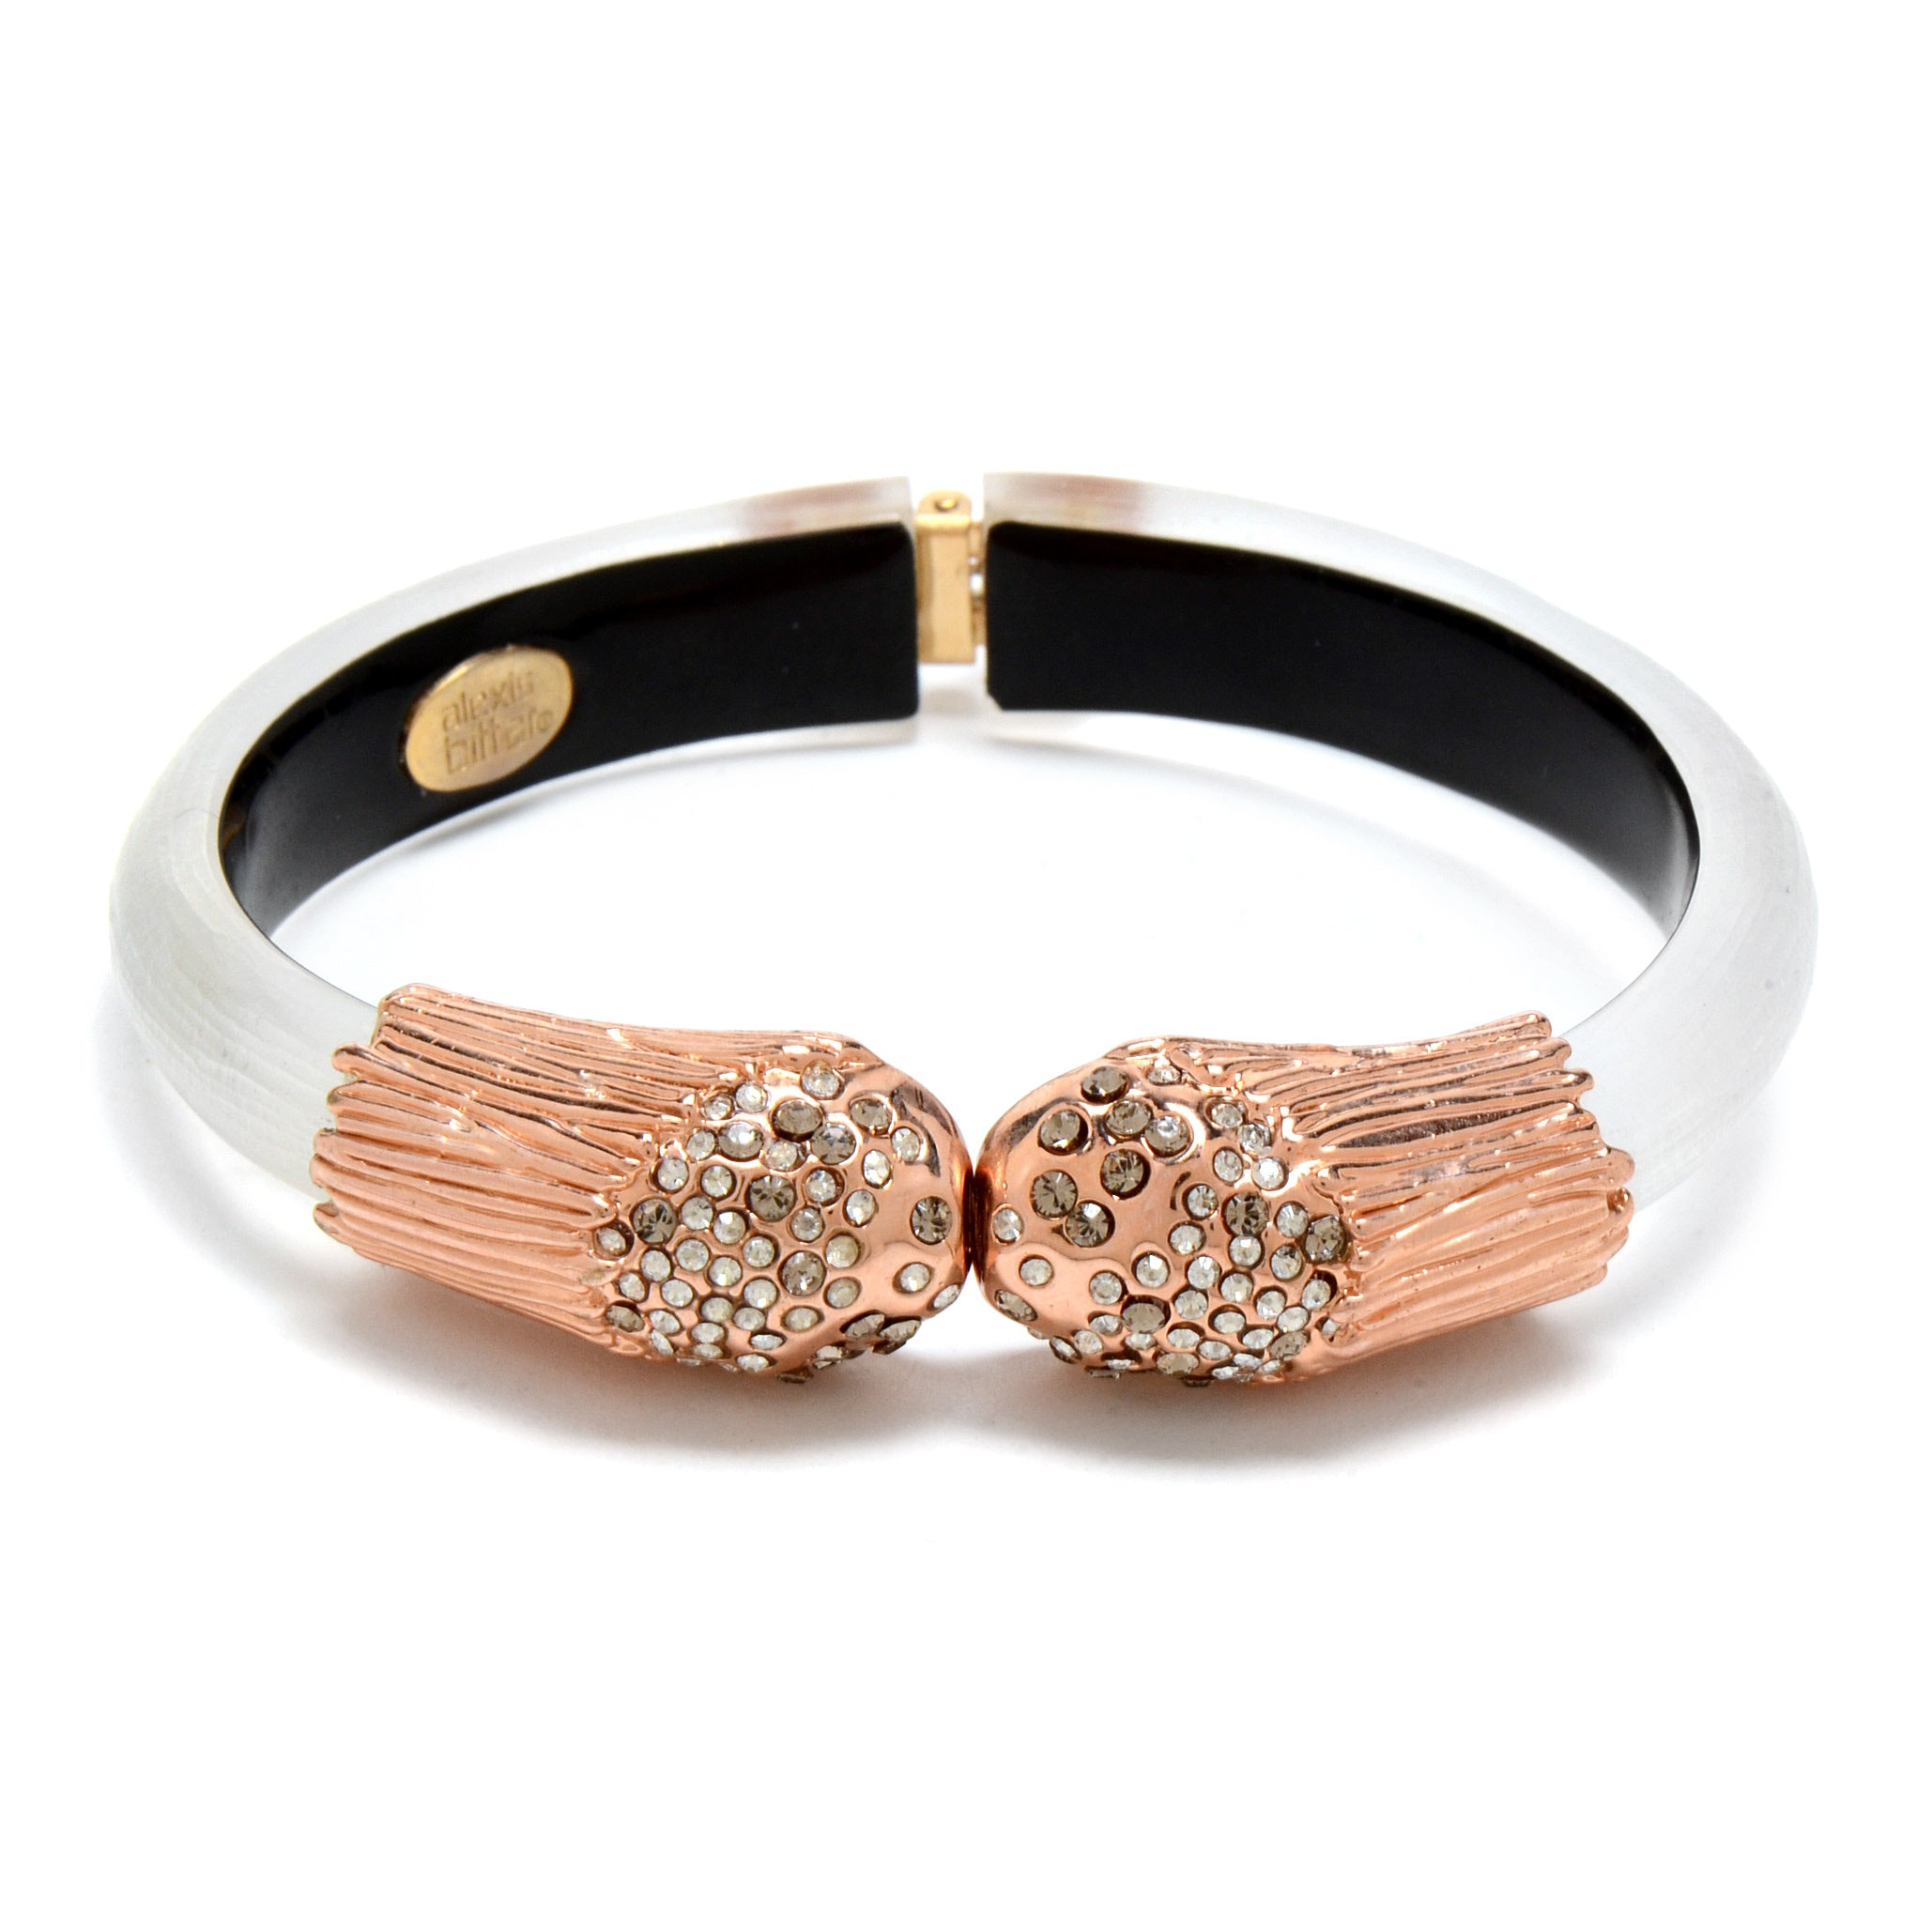 Alexis Bitar Embellished Bangle Bracelet